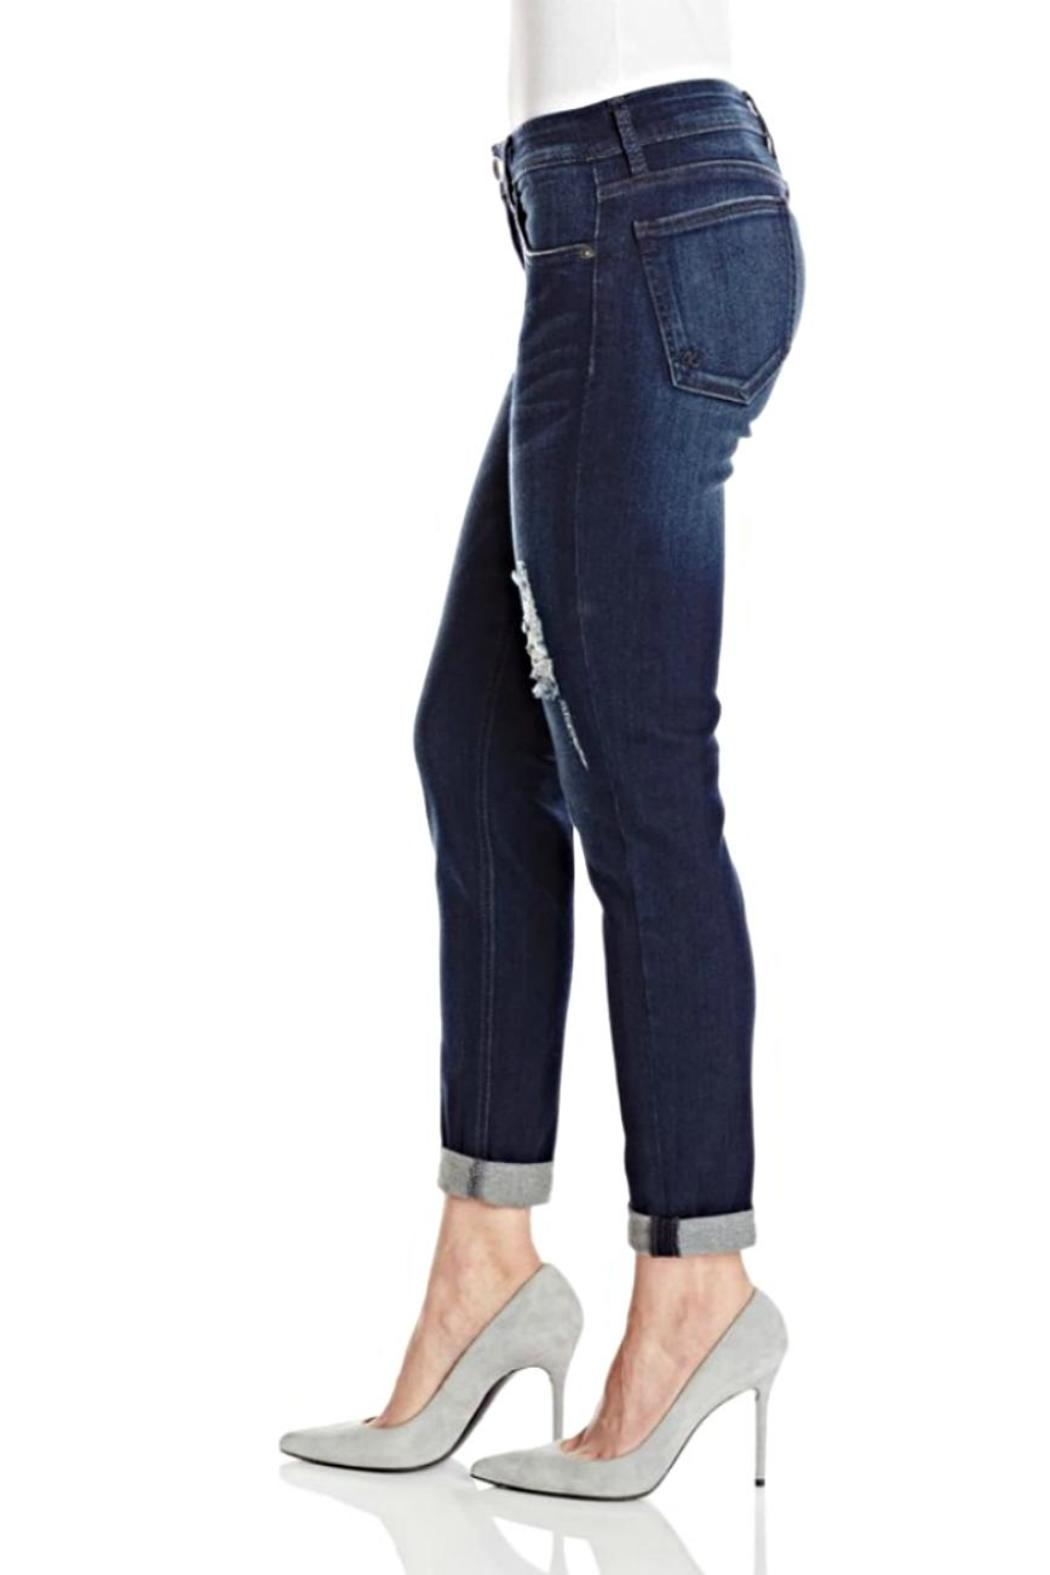 Kut from the Kloth Catherine Boyfriend Jean - Front Cropped Image